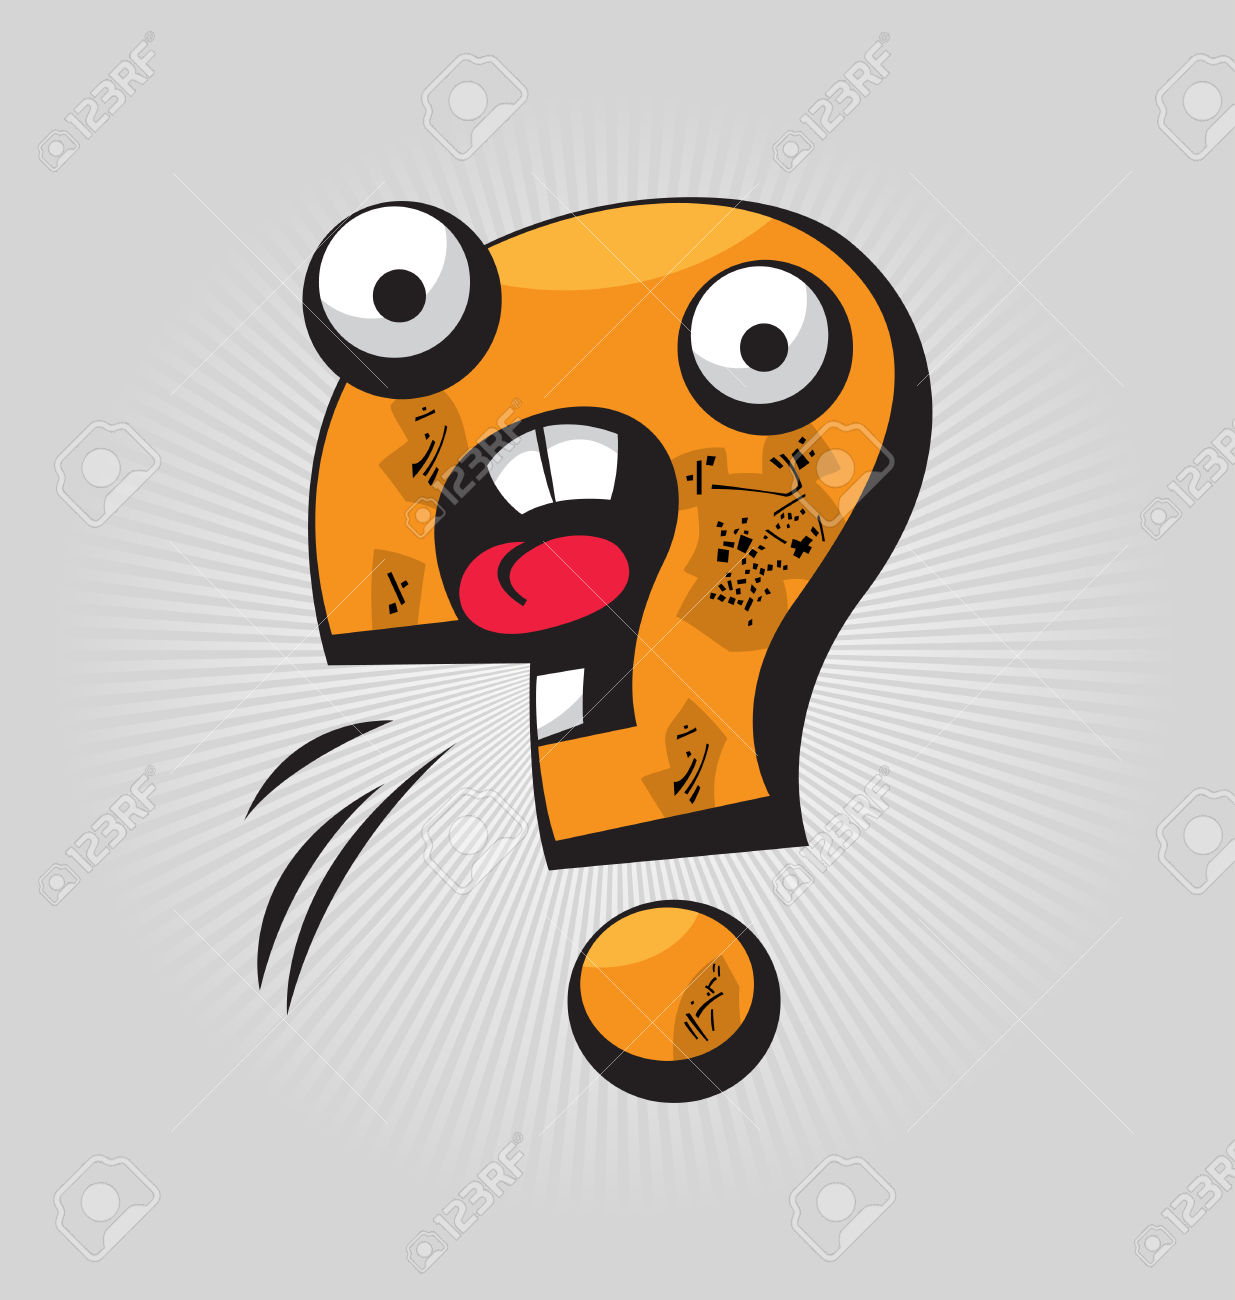 Childish Confused Question Mark With Big Eyes And Funny Face.